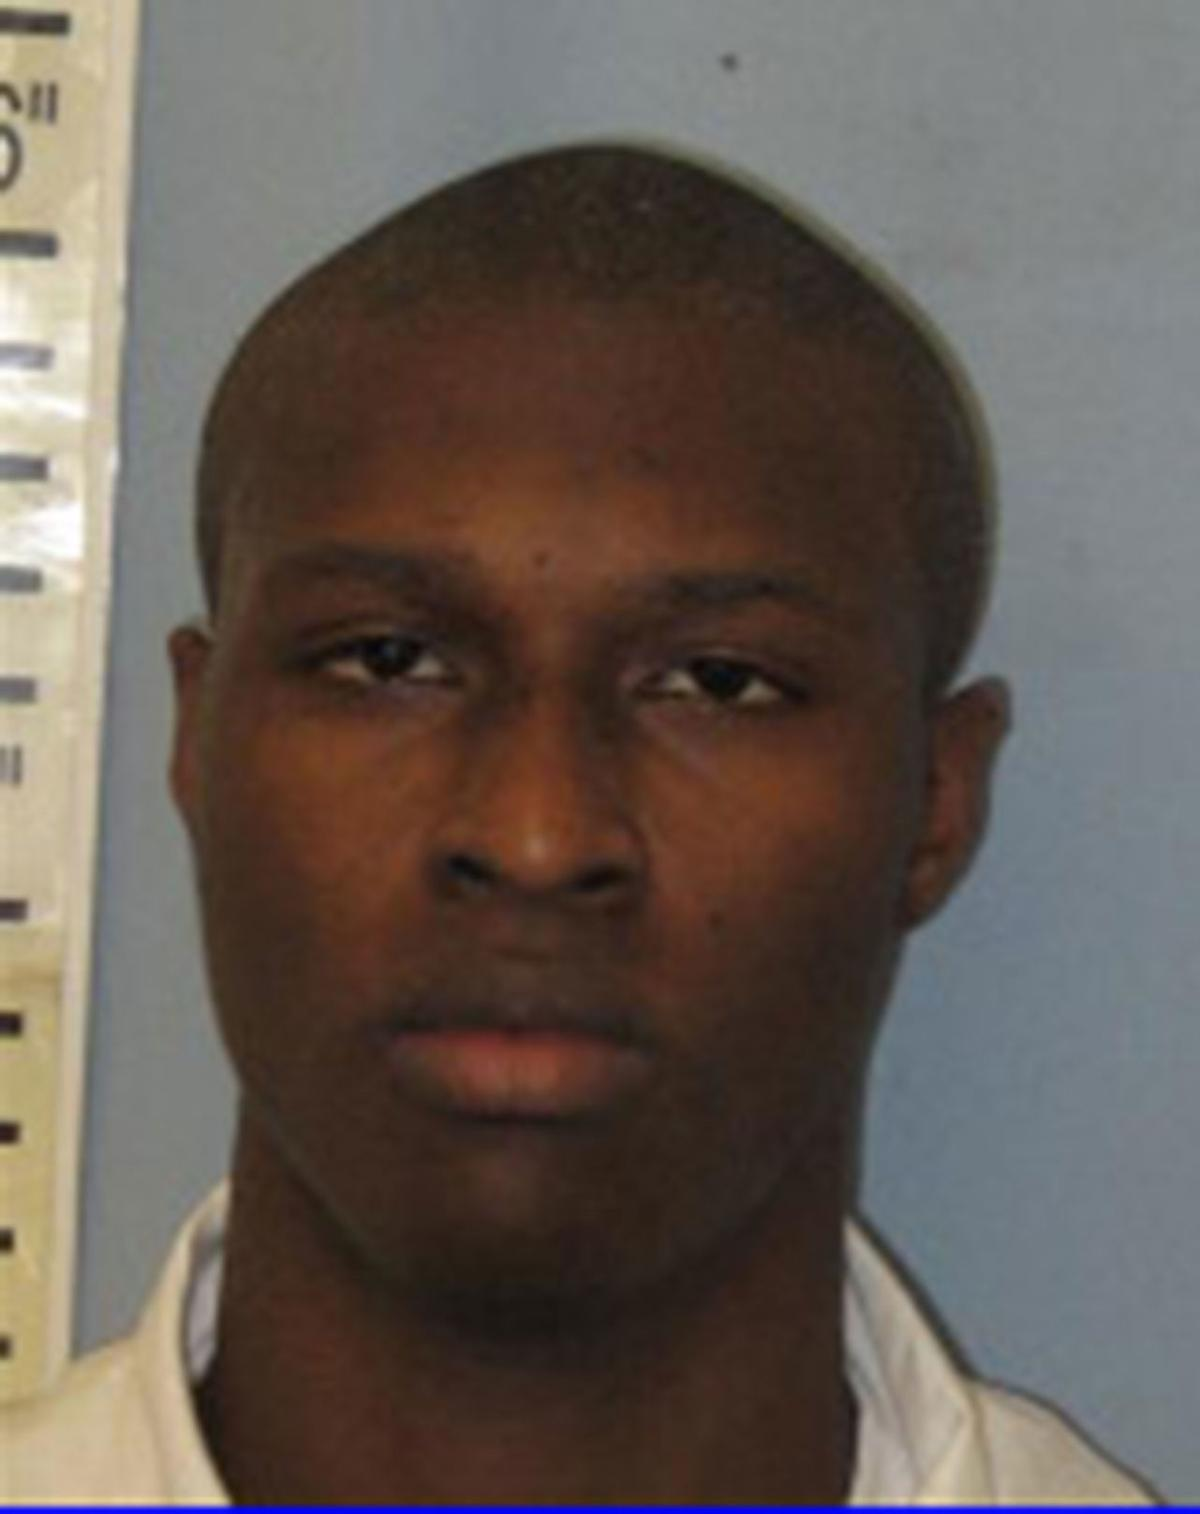 Victim of jail attack 'waiting to die,' according to family